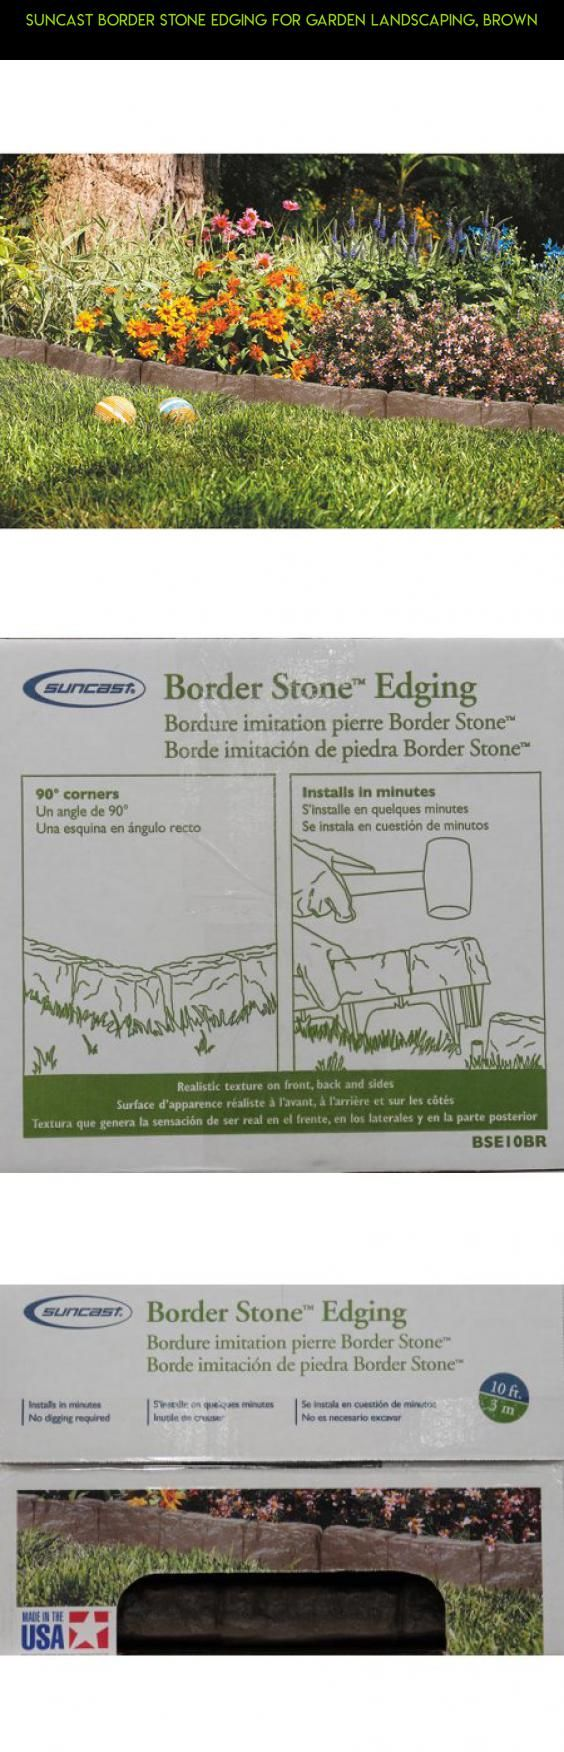 Suncast Border Stone Edging for Garden Landscaping, BROWN #technology #fpv #drone #kit #camera #storage #racing #plans #products #drawers #tech #shopping #gadgets #parts #7